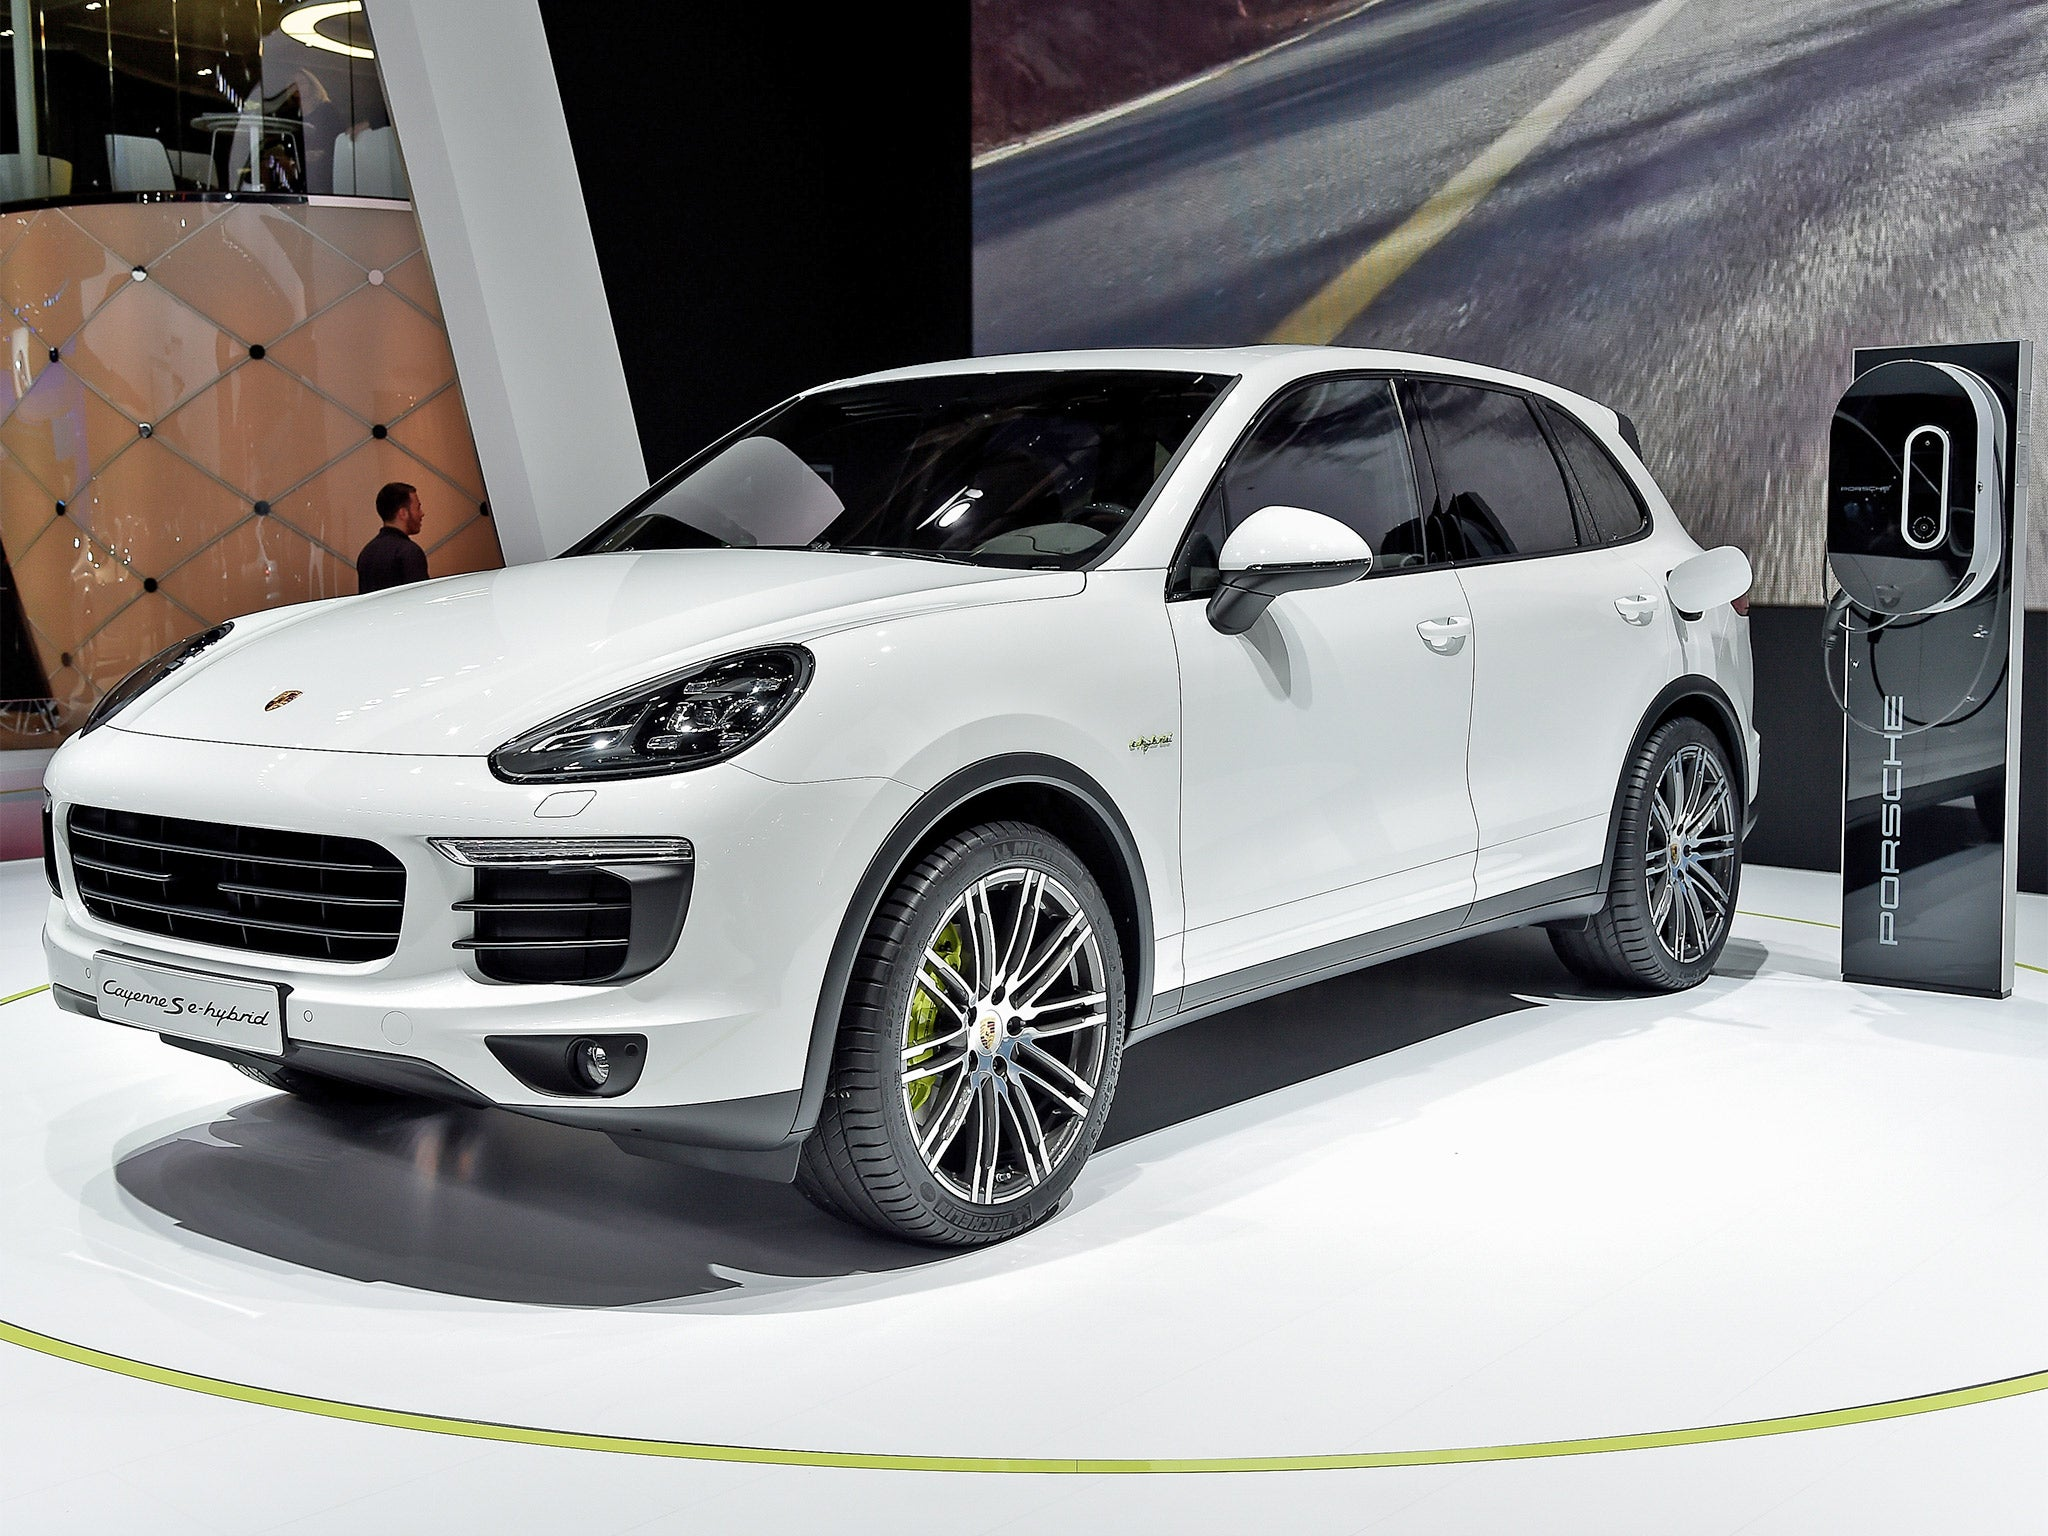 Porsche cayenne s e hybrid motoring review luxury performance cars vs polar bears isn t really a fair fight the independent